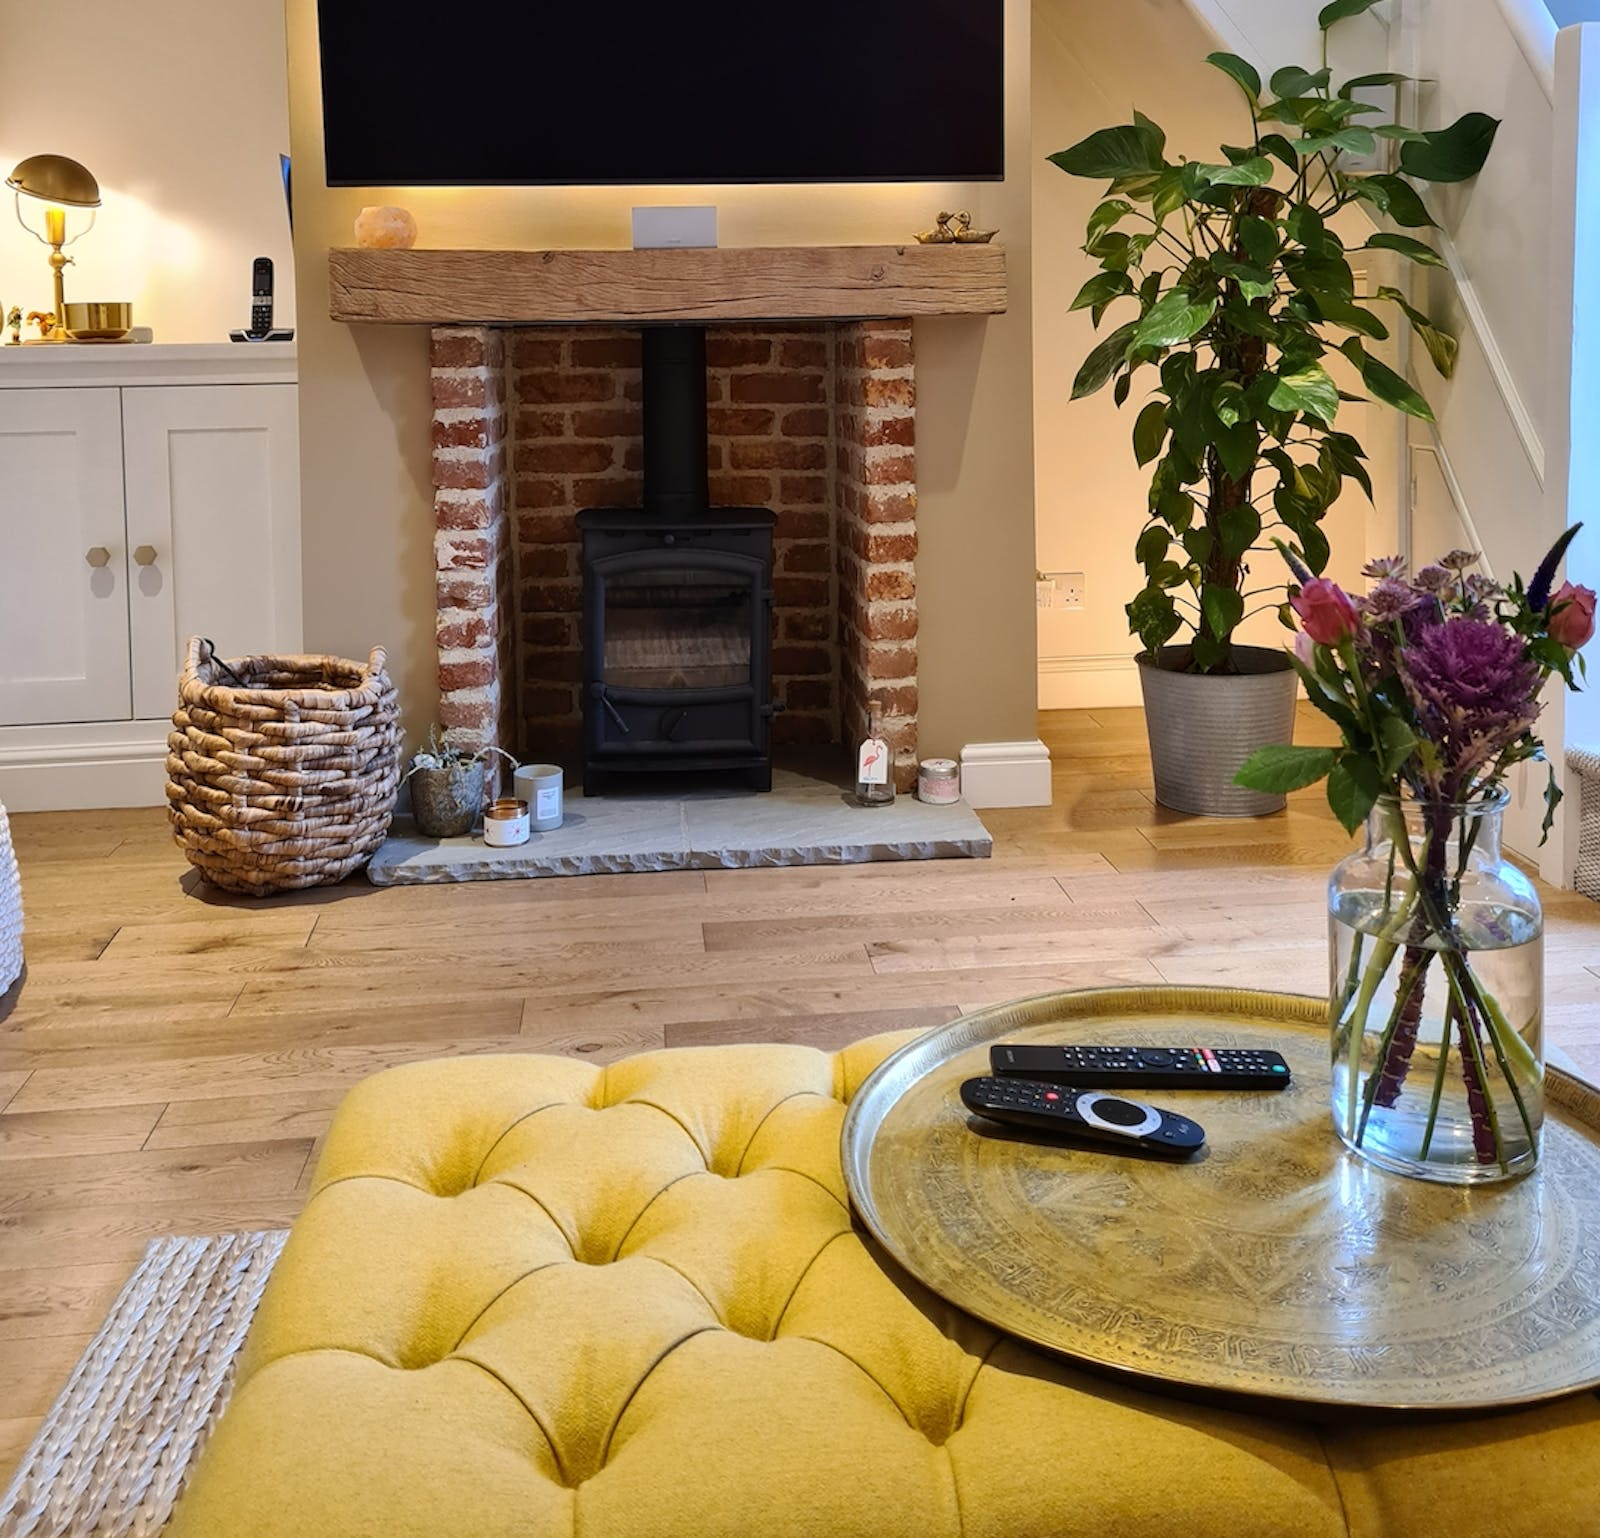 Living room with yellow foot stool, pink flowers and cosy fireplace